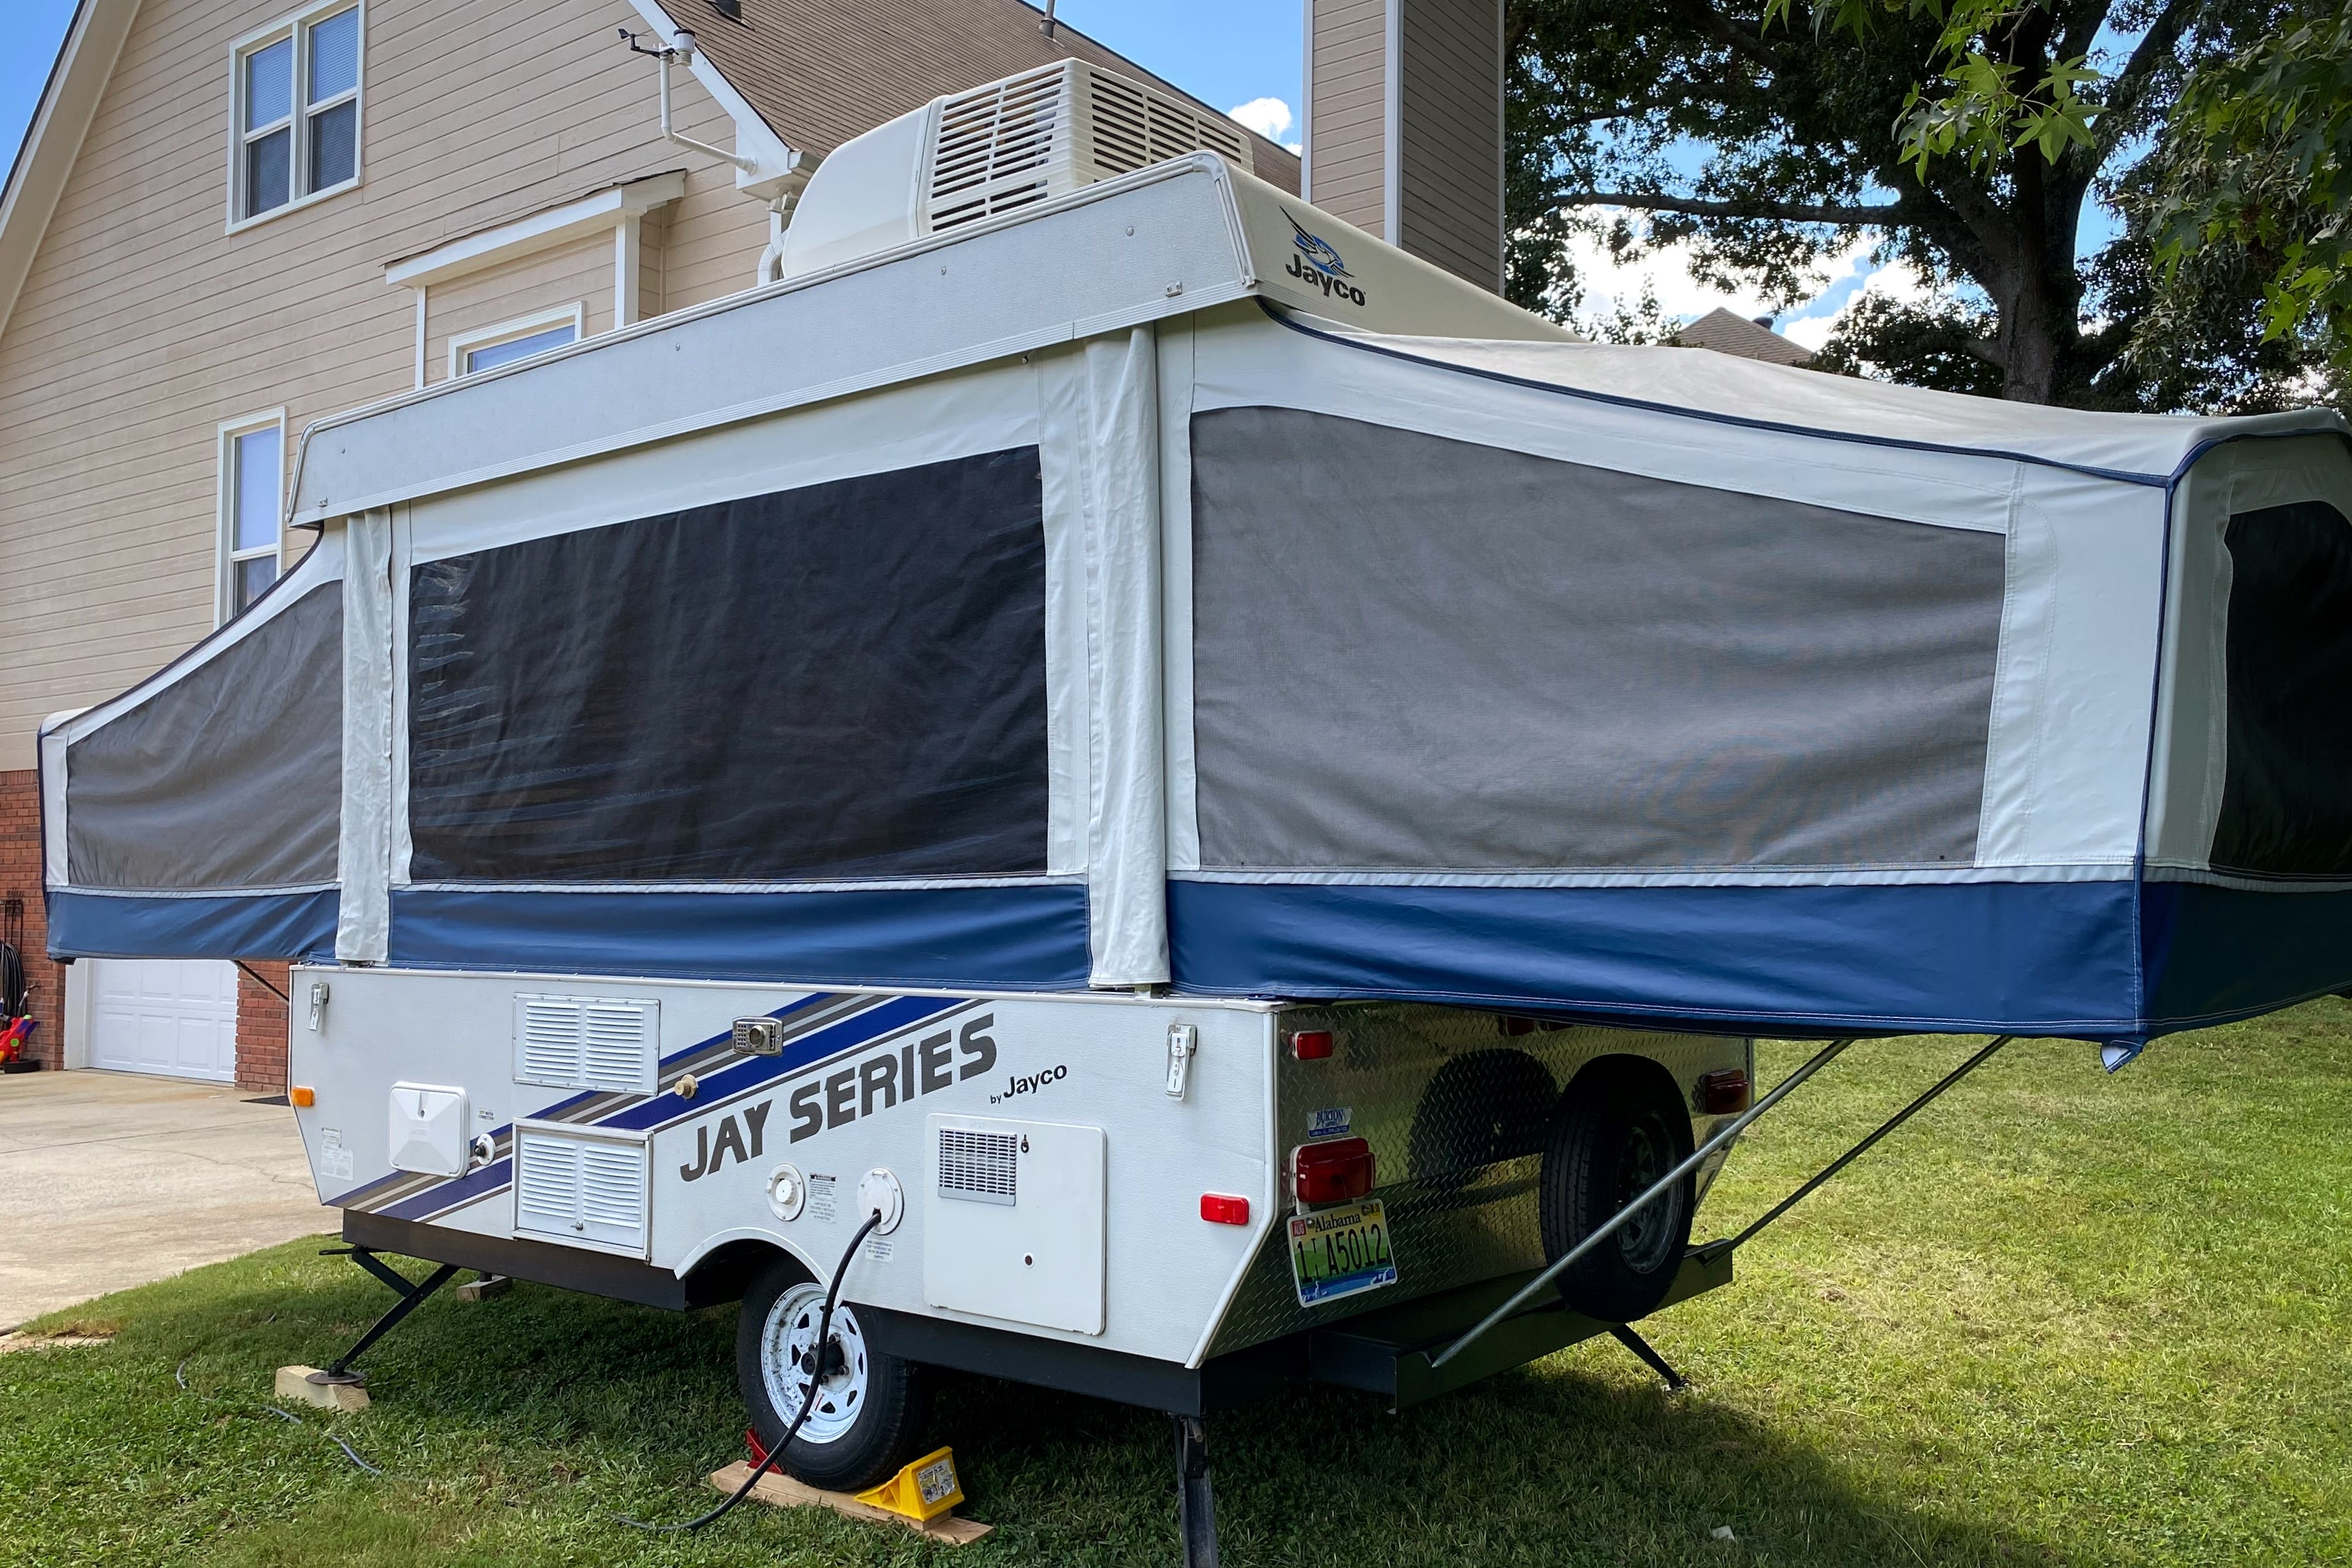 Rear View of the Camper. Jayco Jay Series 2008